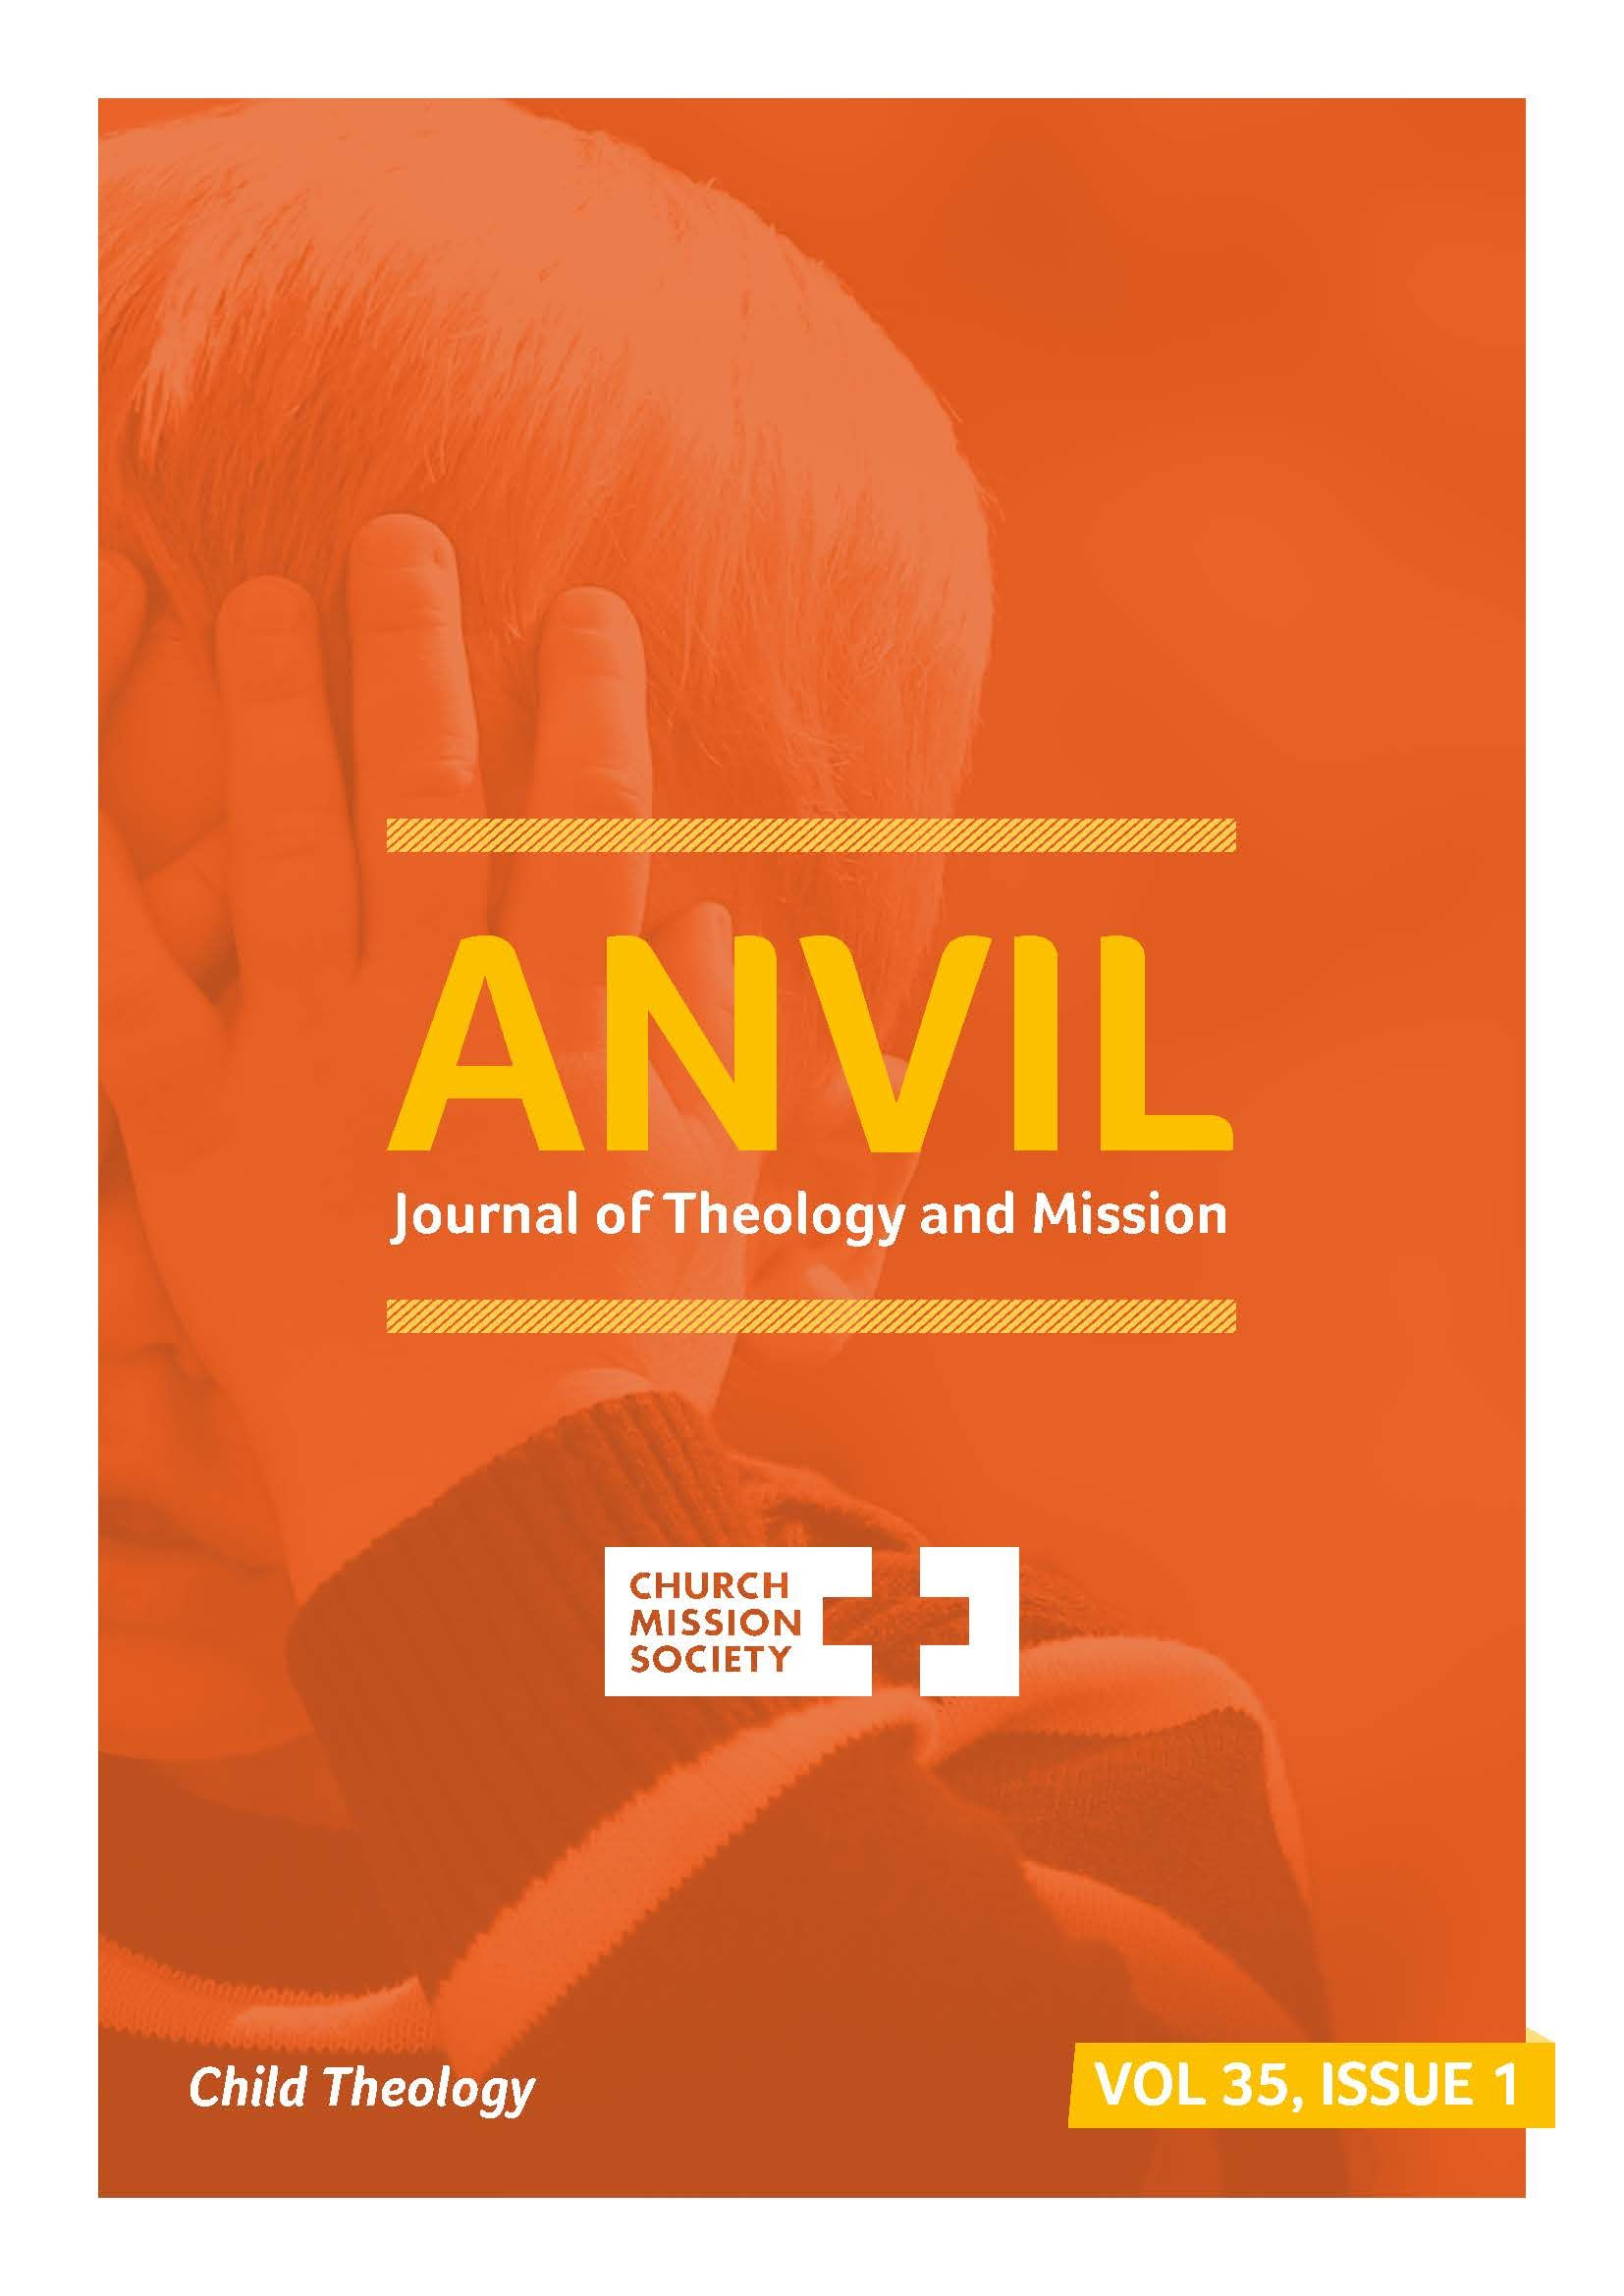 Anvil Journal of Theology and Mission Cover